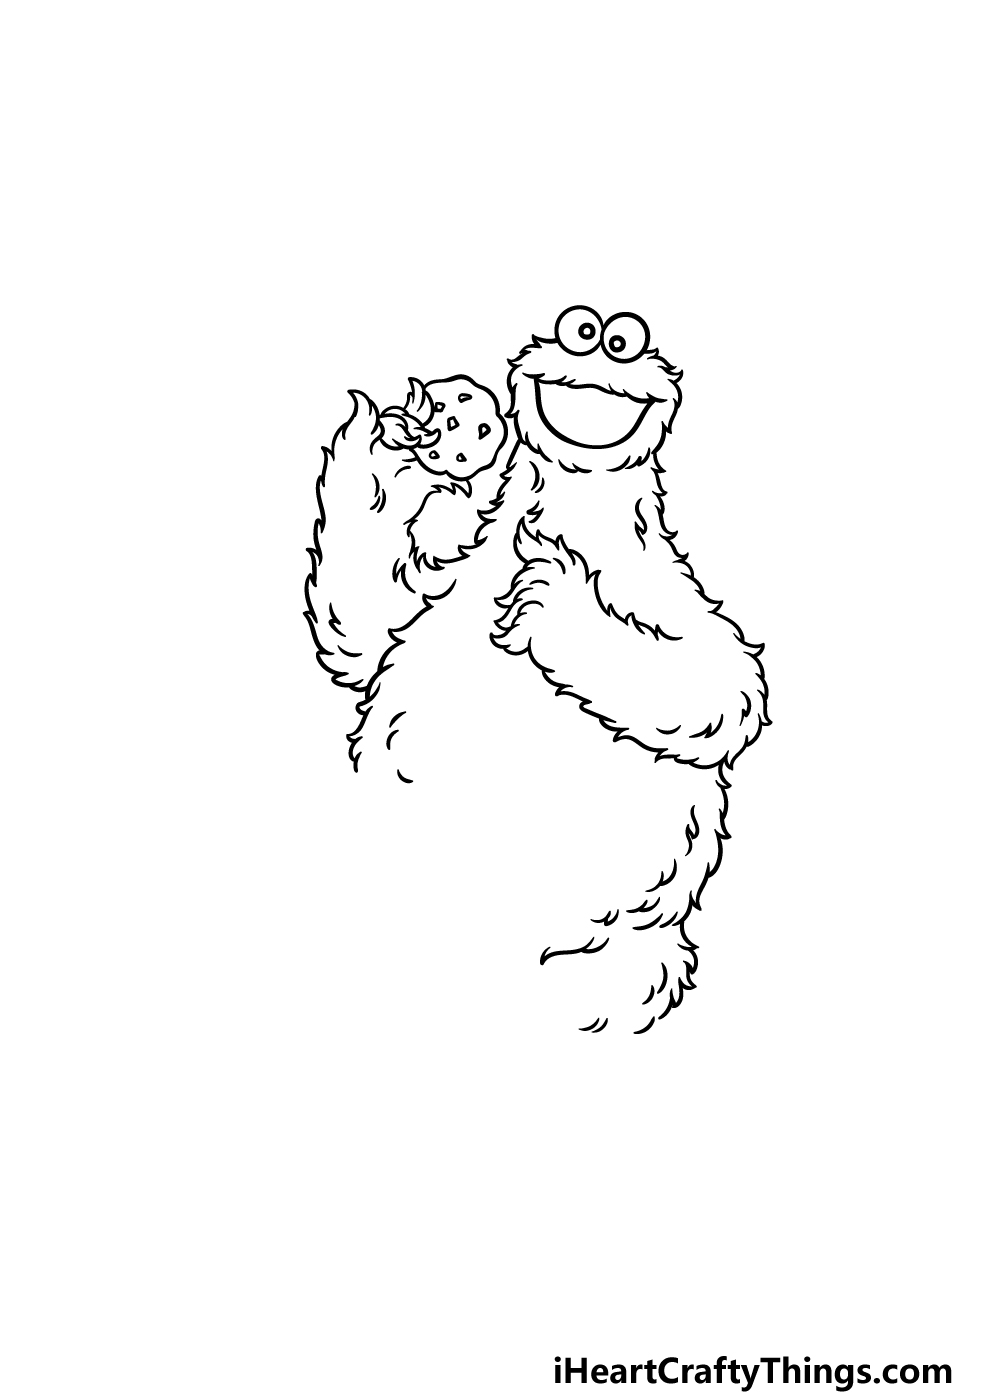 drawing a cookie monster step 4